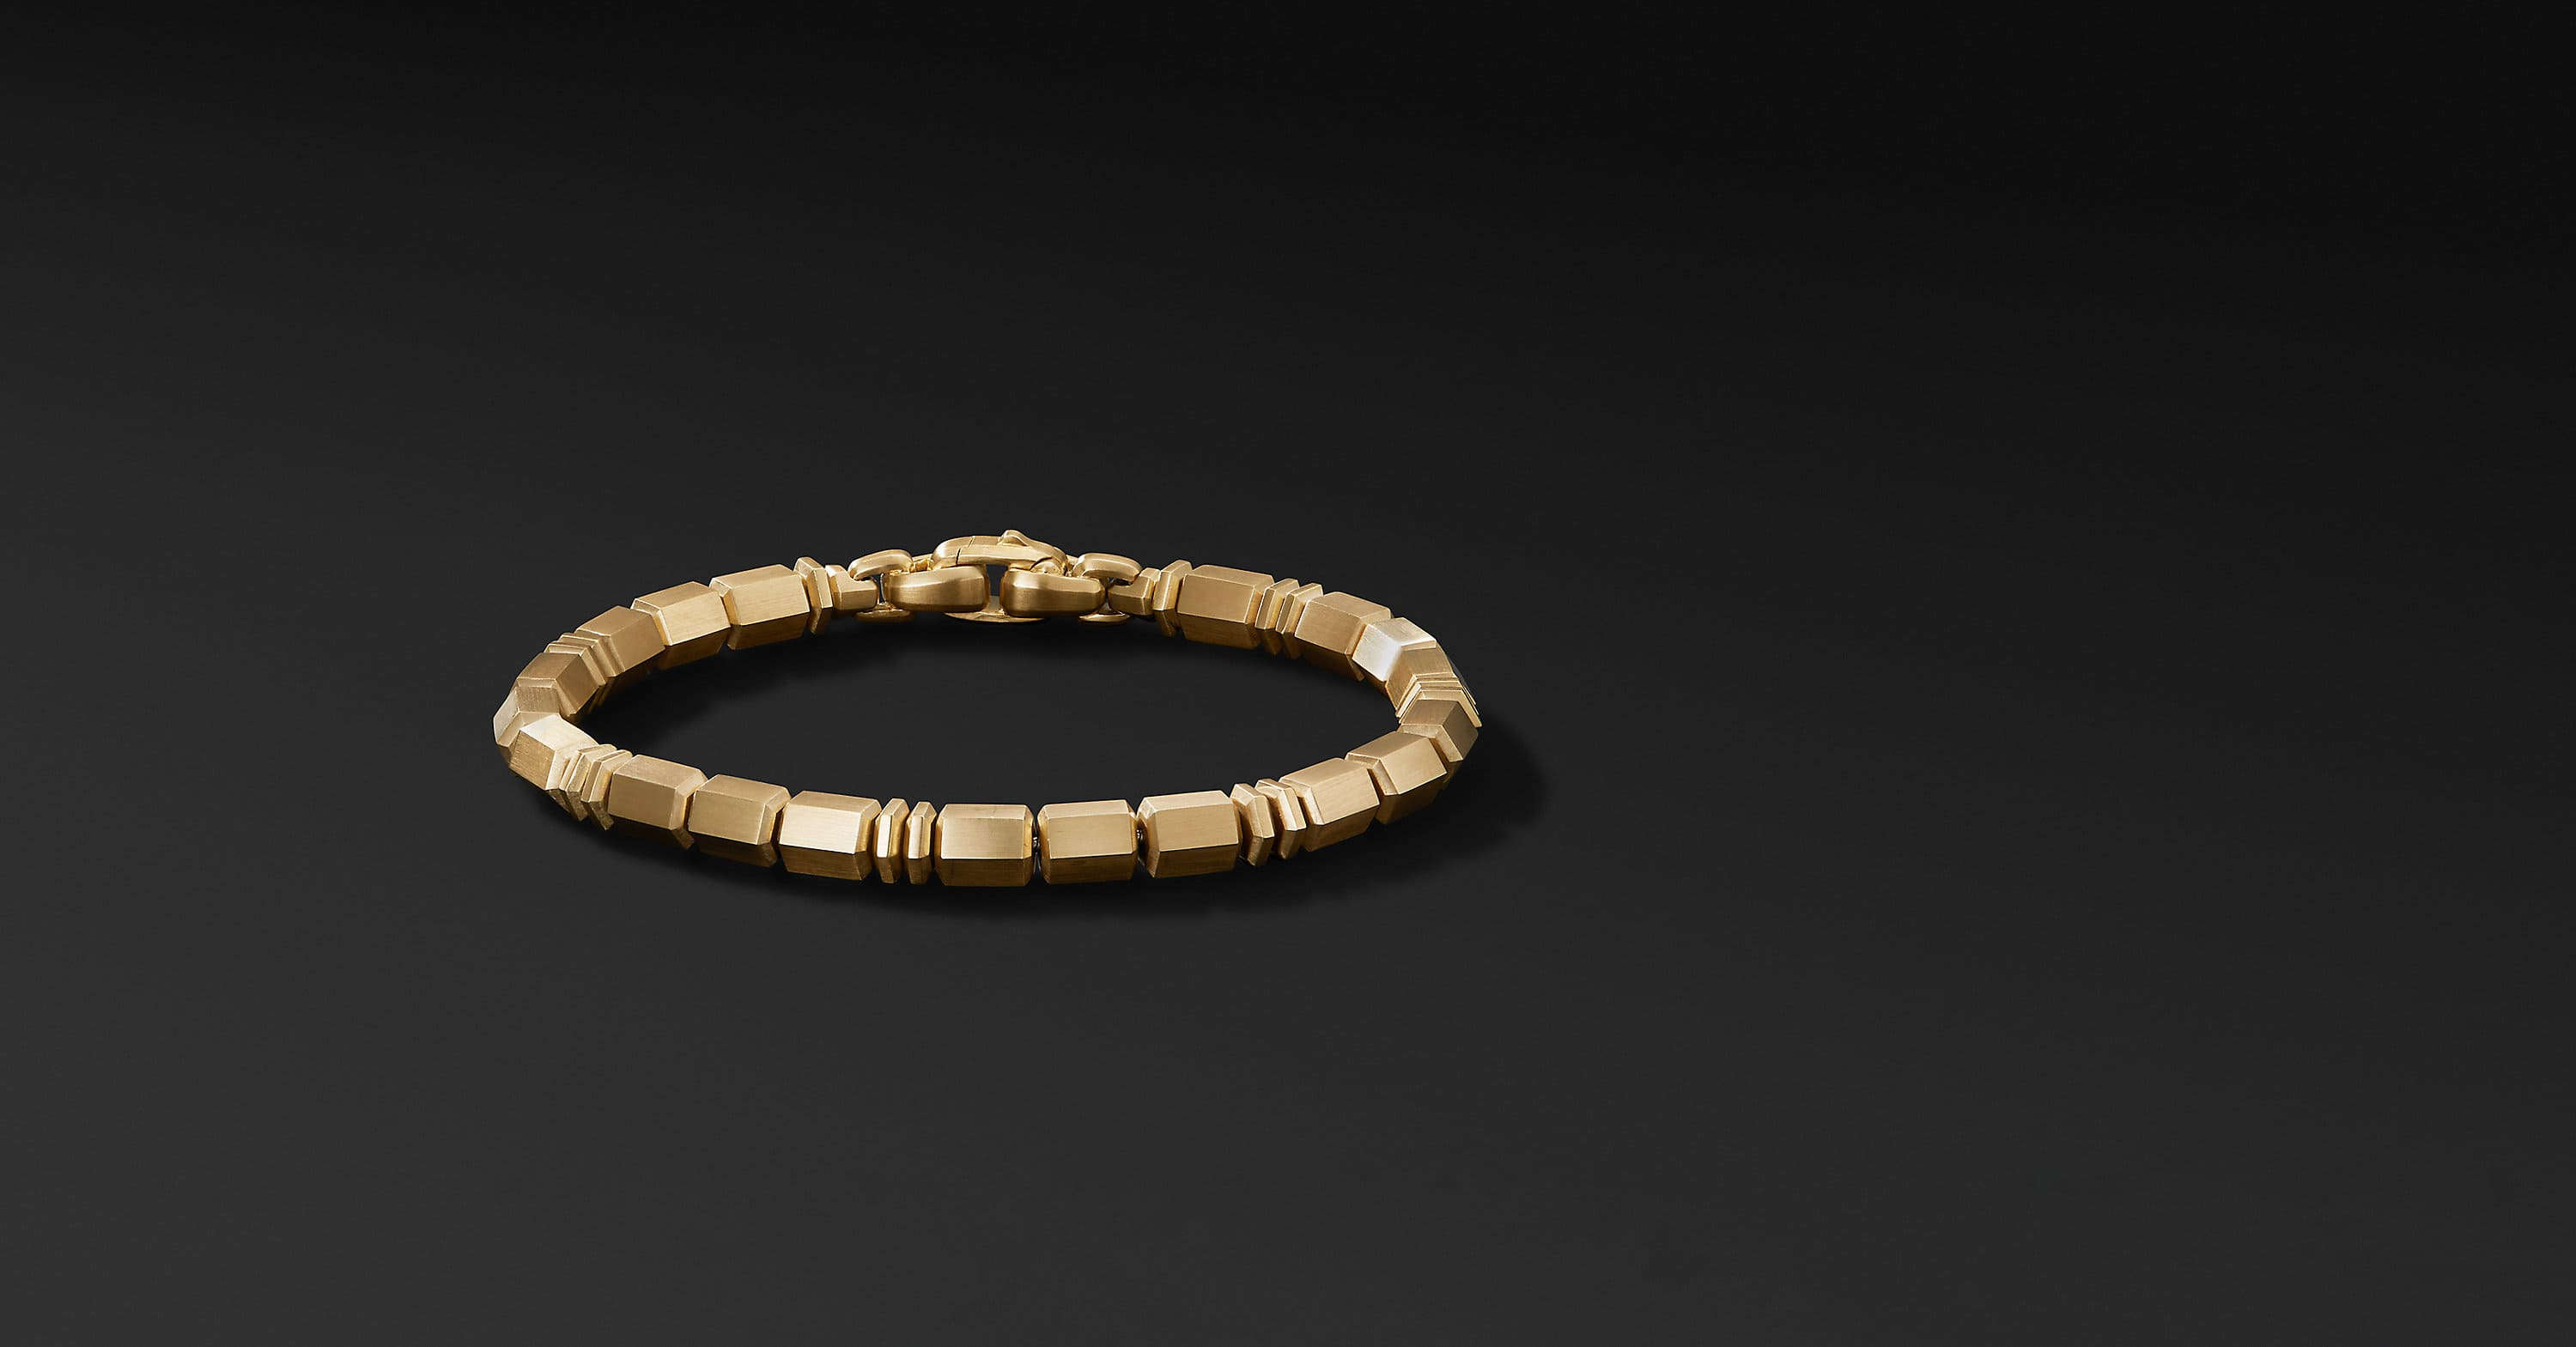 Bead Bracelet in 18K Yellow Gold, 6mm